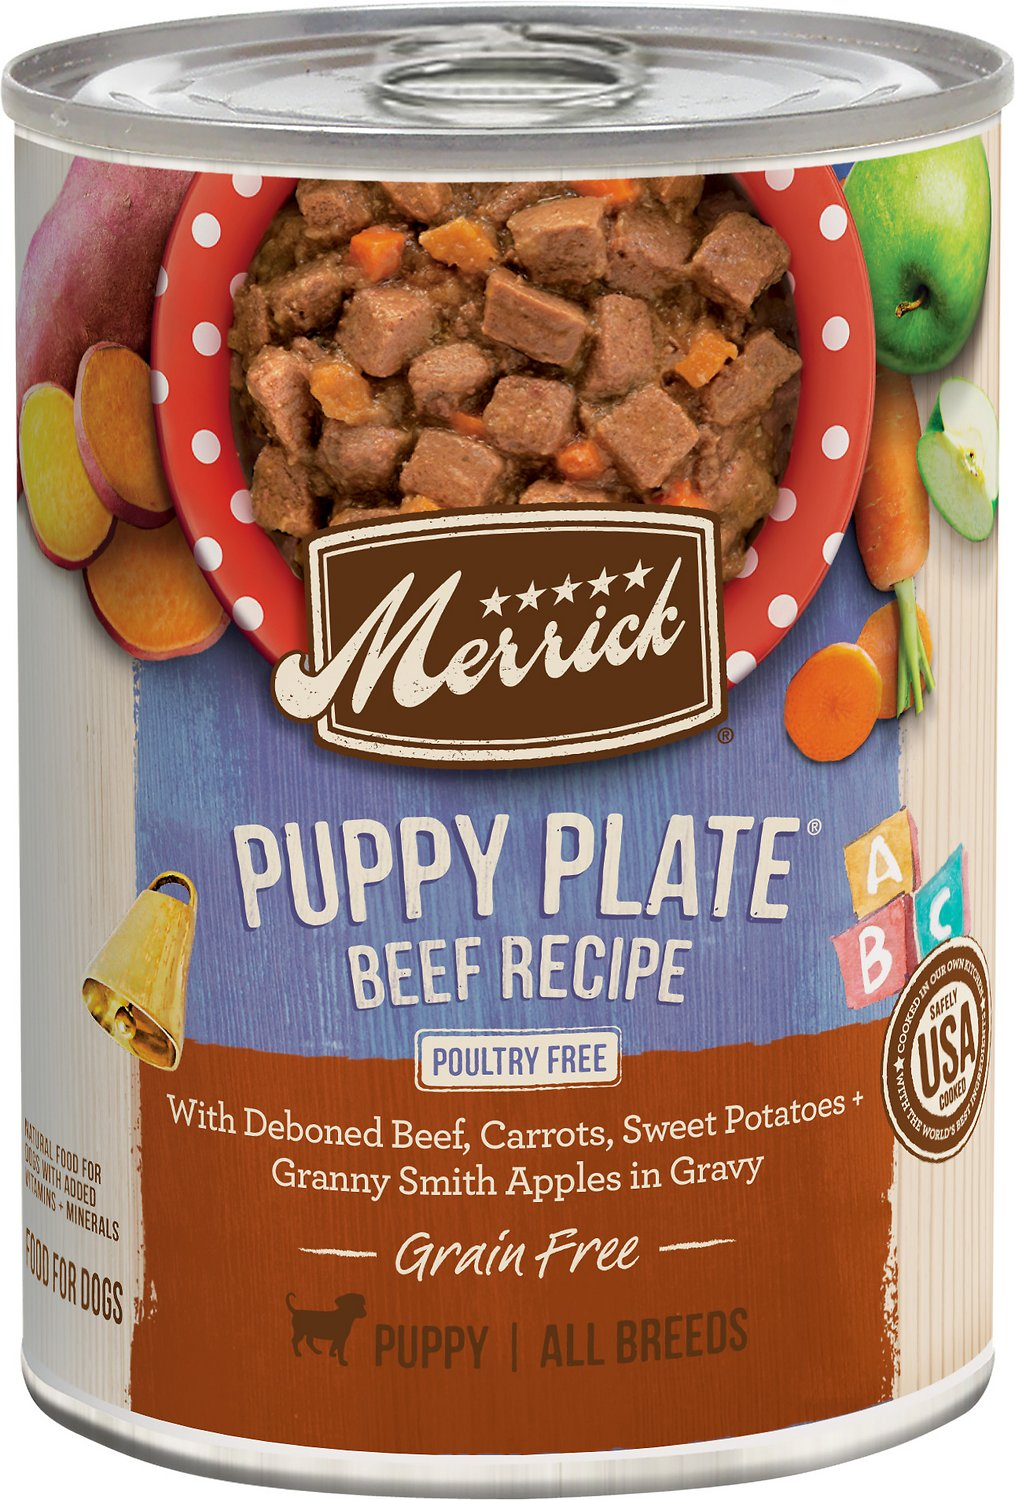 Merrick Puppy Plate Canned Dog Food